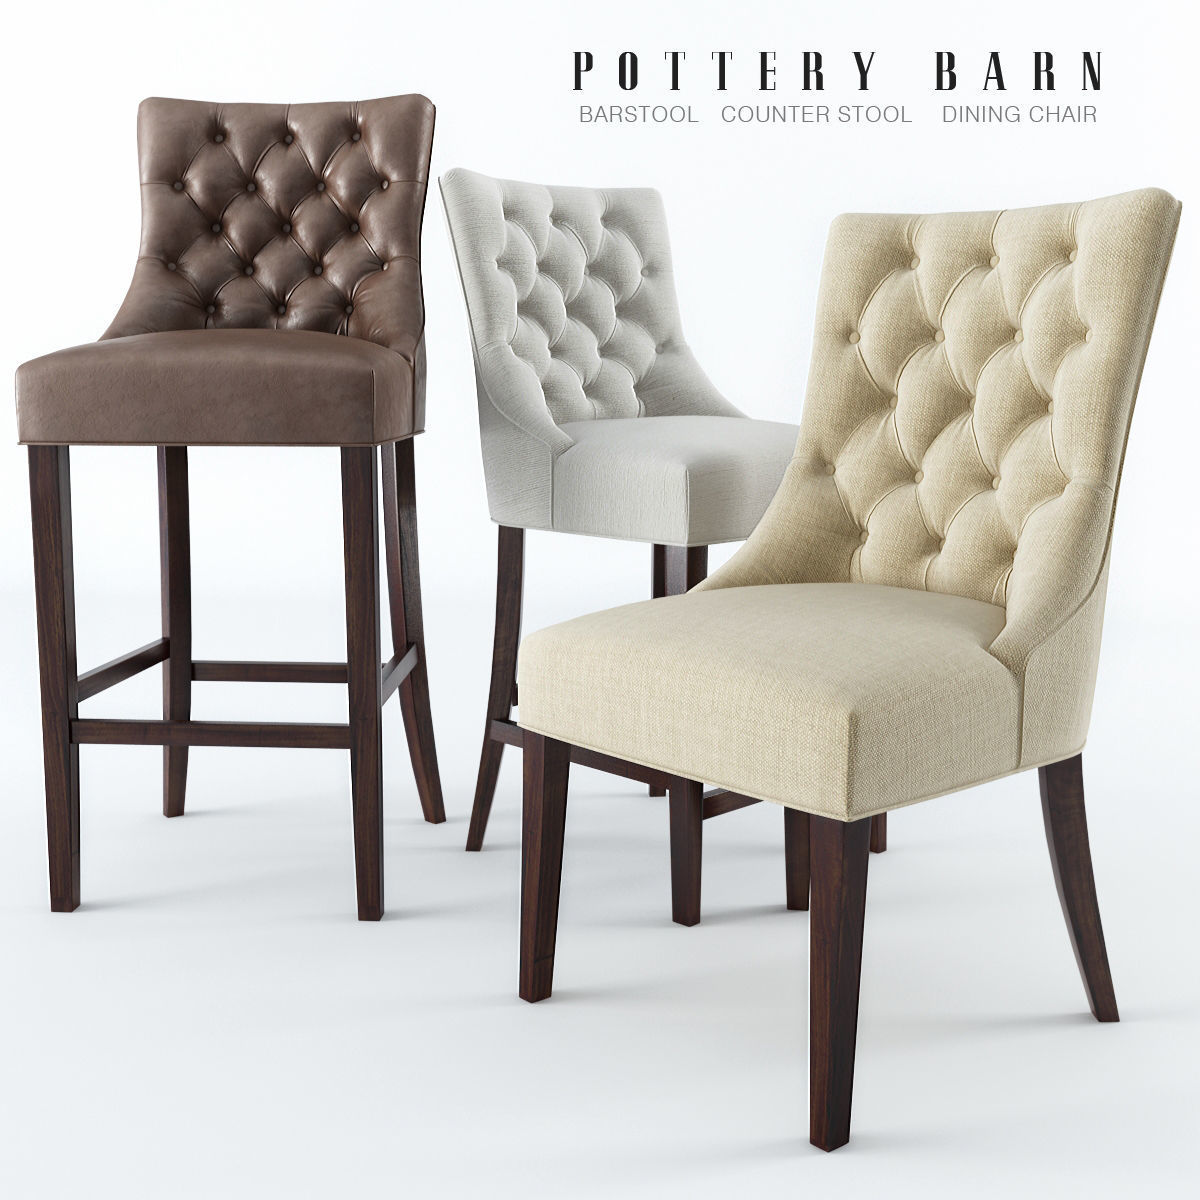 Chairs Pottery Barn | 3D model